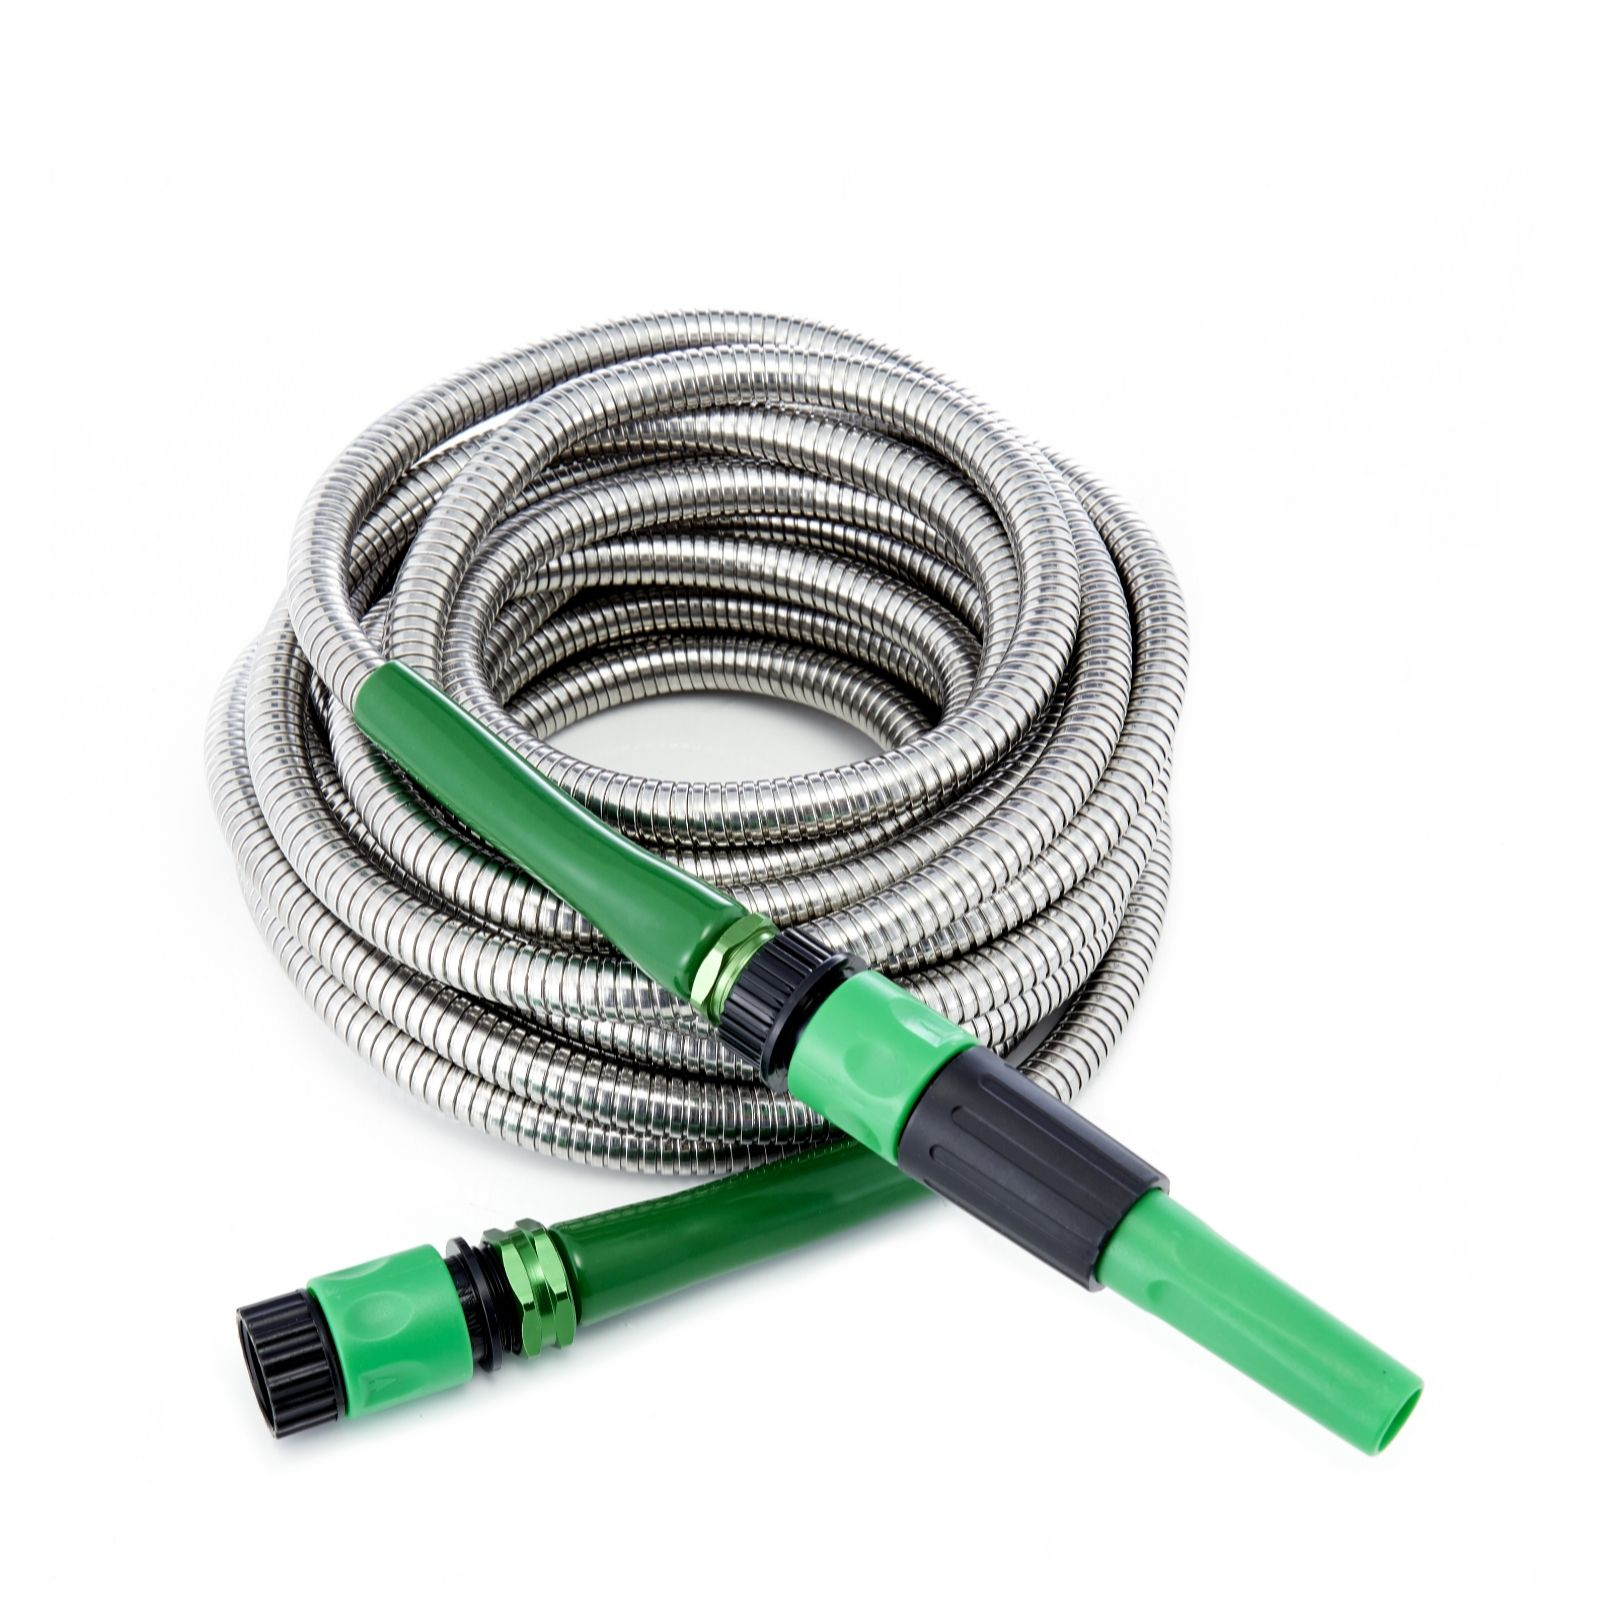 bernini 40ft stainless steel no kink garden hose with nozzle qvc uk